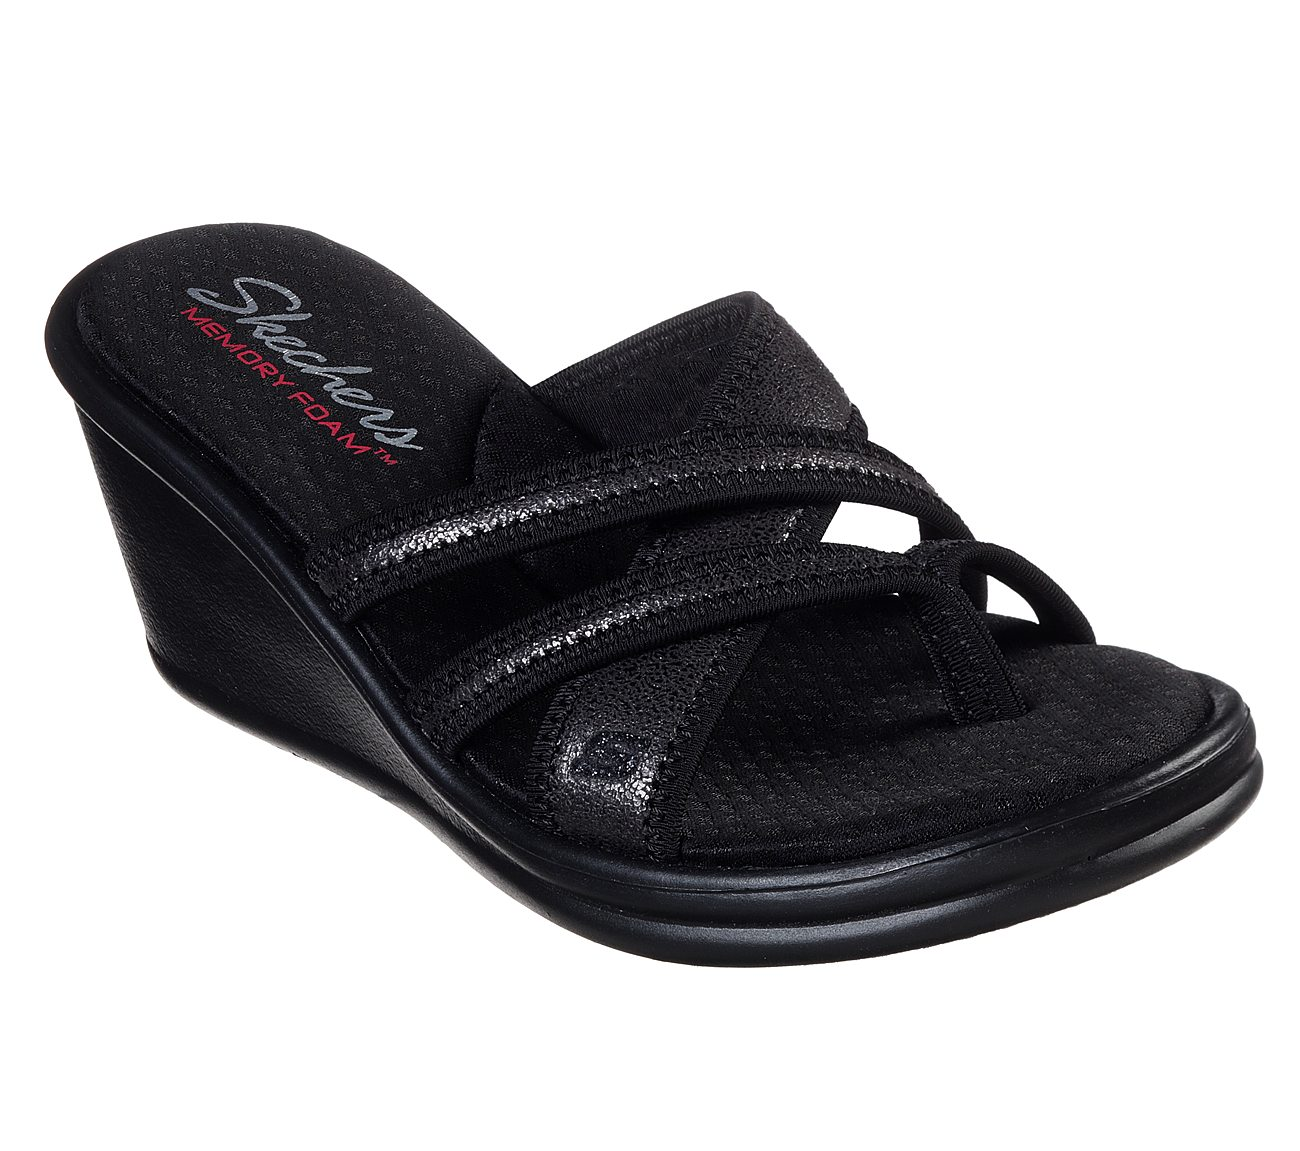 skechers memory foam wedge sandals